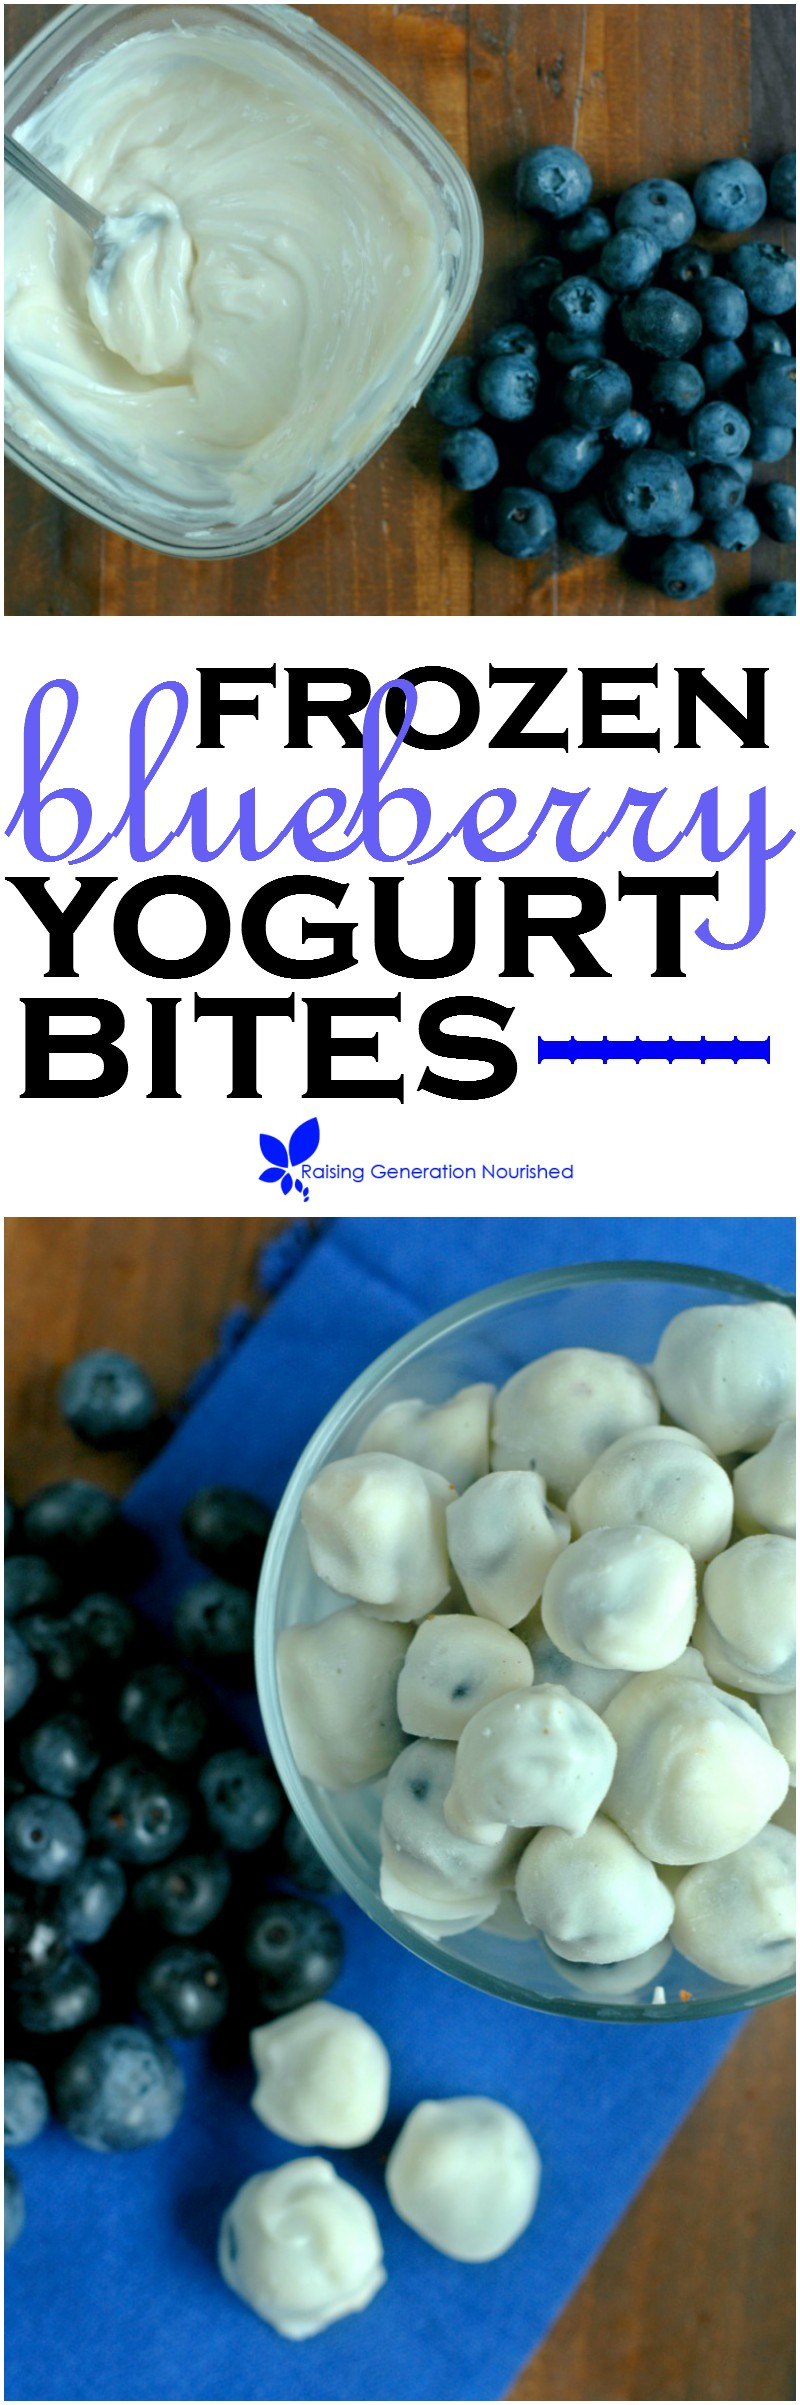 Frozen Blueberry Yogurt Bites :: Quick, sweet little yogurt covered blueberry bites perfect for little hands!